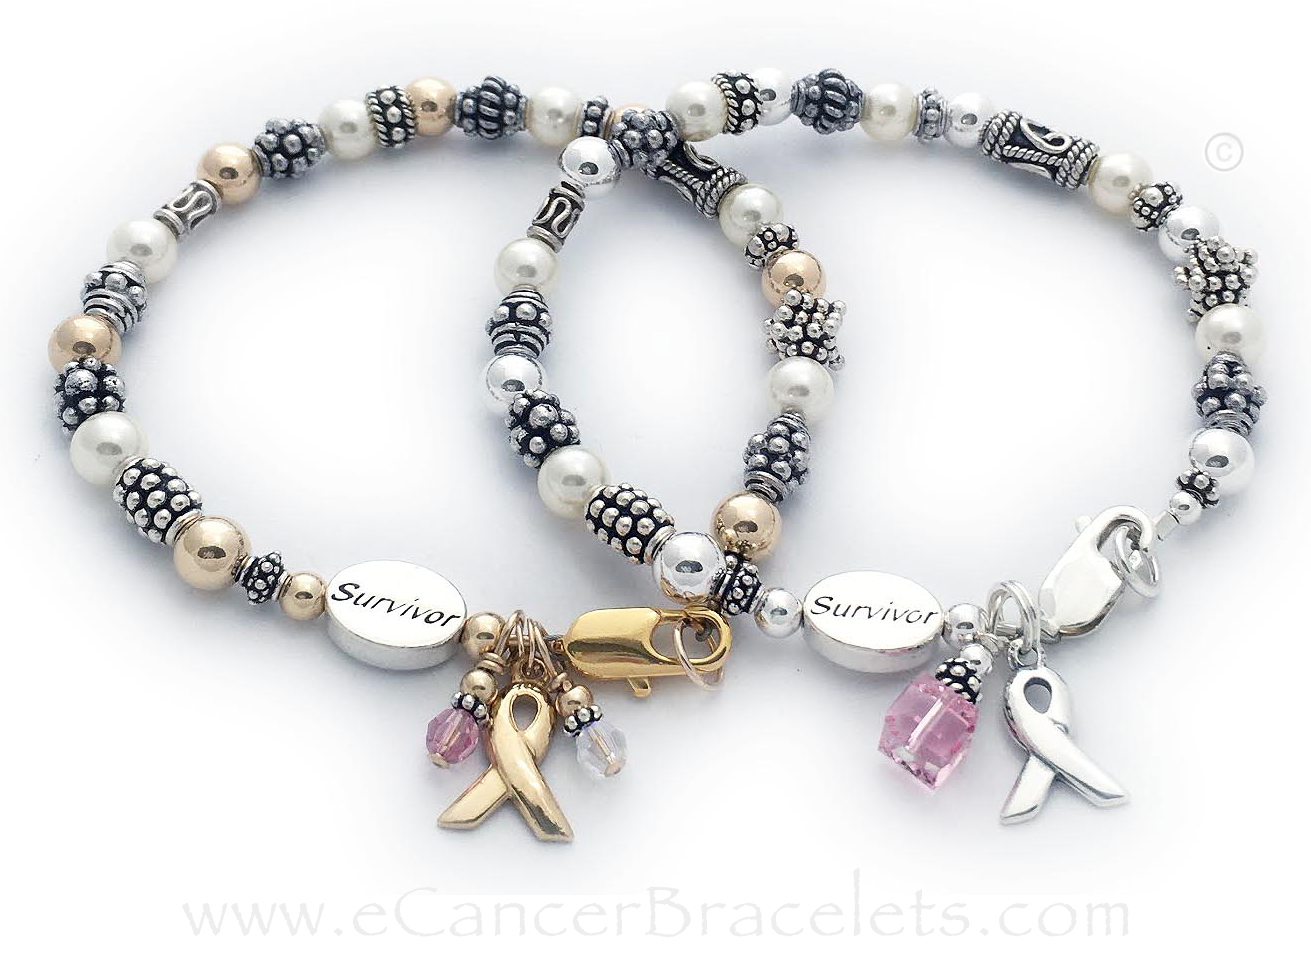 Gold & Sterling Silver Breast Cancer Survivor Bracelets   The Sterling Silver Breast Cancer Survivor Bracelet with a Pink Crystal Dangle and PLAIN Ribbon Charm (included in price). Shown with the simple silver lobster claw clasp and 1 add-on: Survivor Message Bead.  The Gold Breast Cancer Survivor bracelet shown was a special order... they switched out the 6mm square free crystal dangle for 2 - 4mm crystal dangles to signify lung cancer and breast cancer awareness (free exchange - call to order). They also add a Survivor Message Bead.